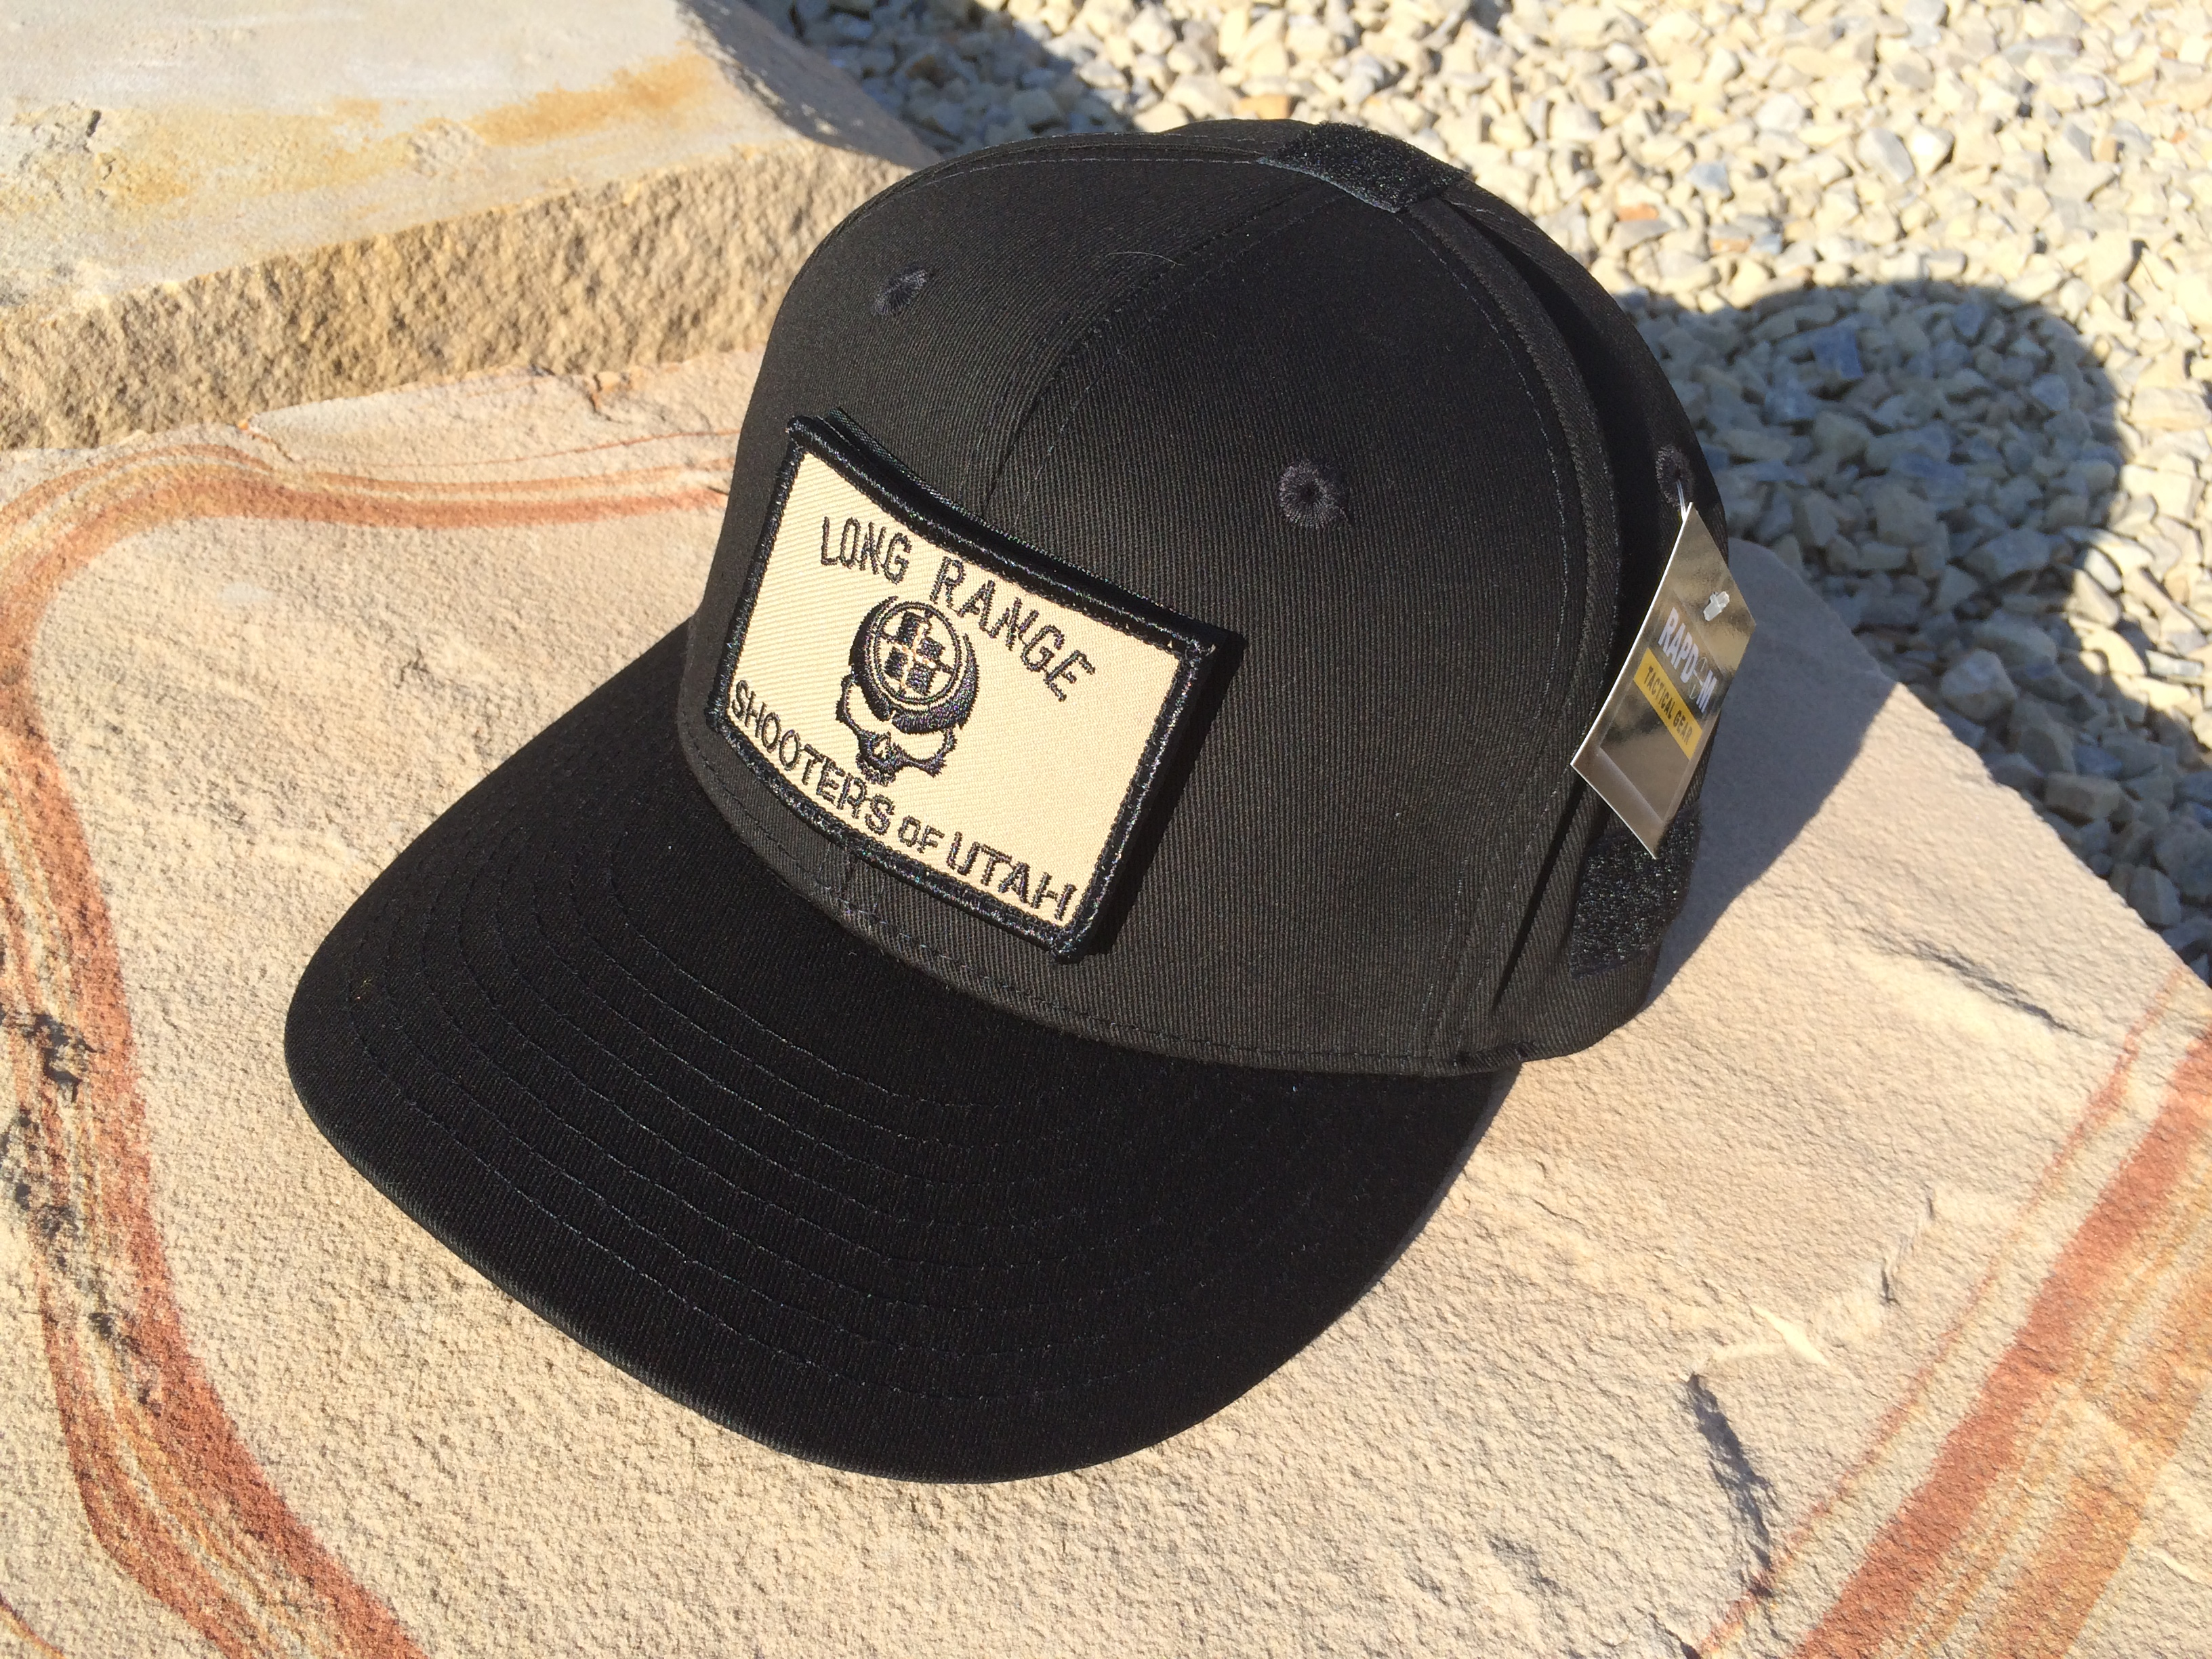 7962629241f3d This product is currently out of stock and unavailable. Product Categories.  Hats · Original Structured Flex Fit LRSU Hats